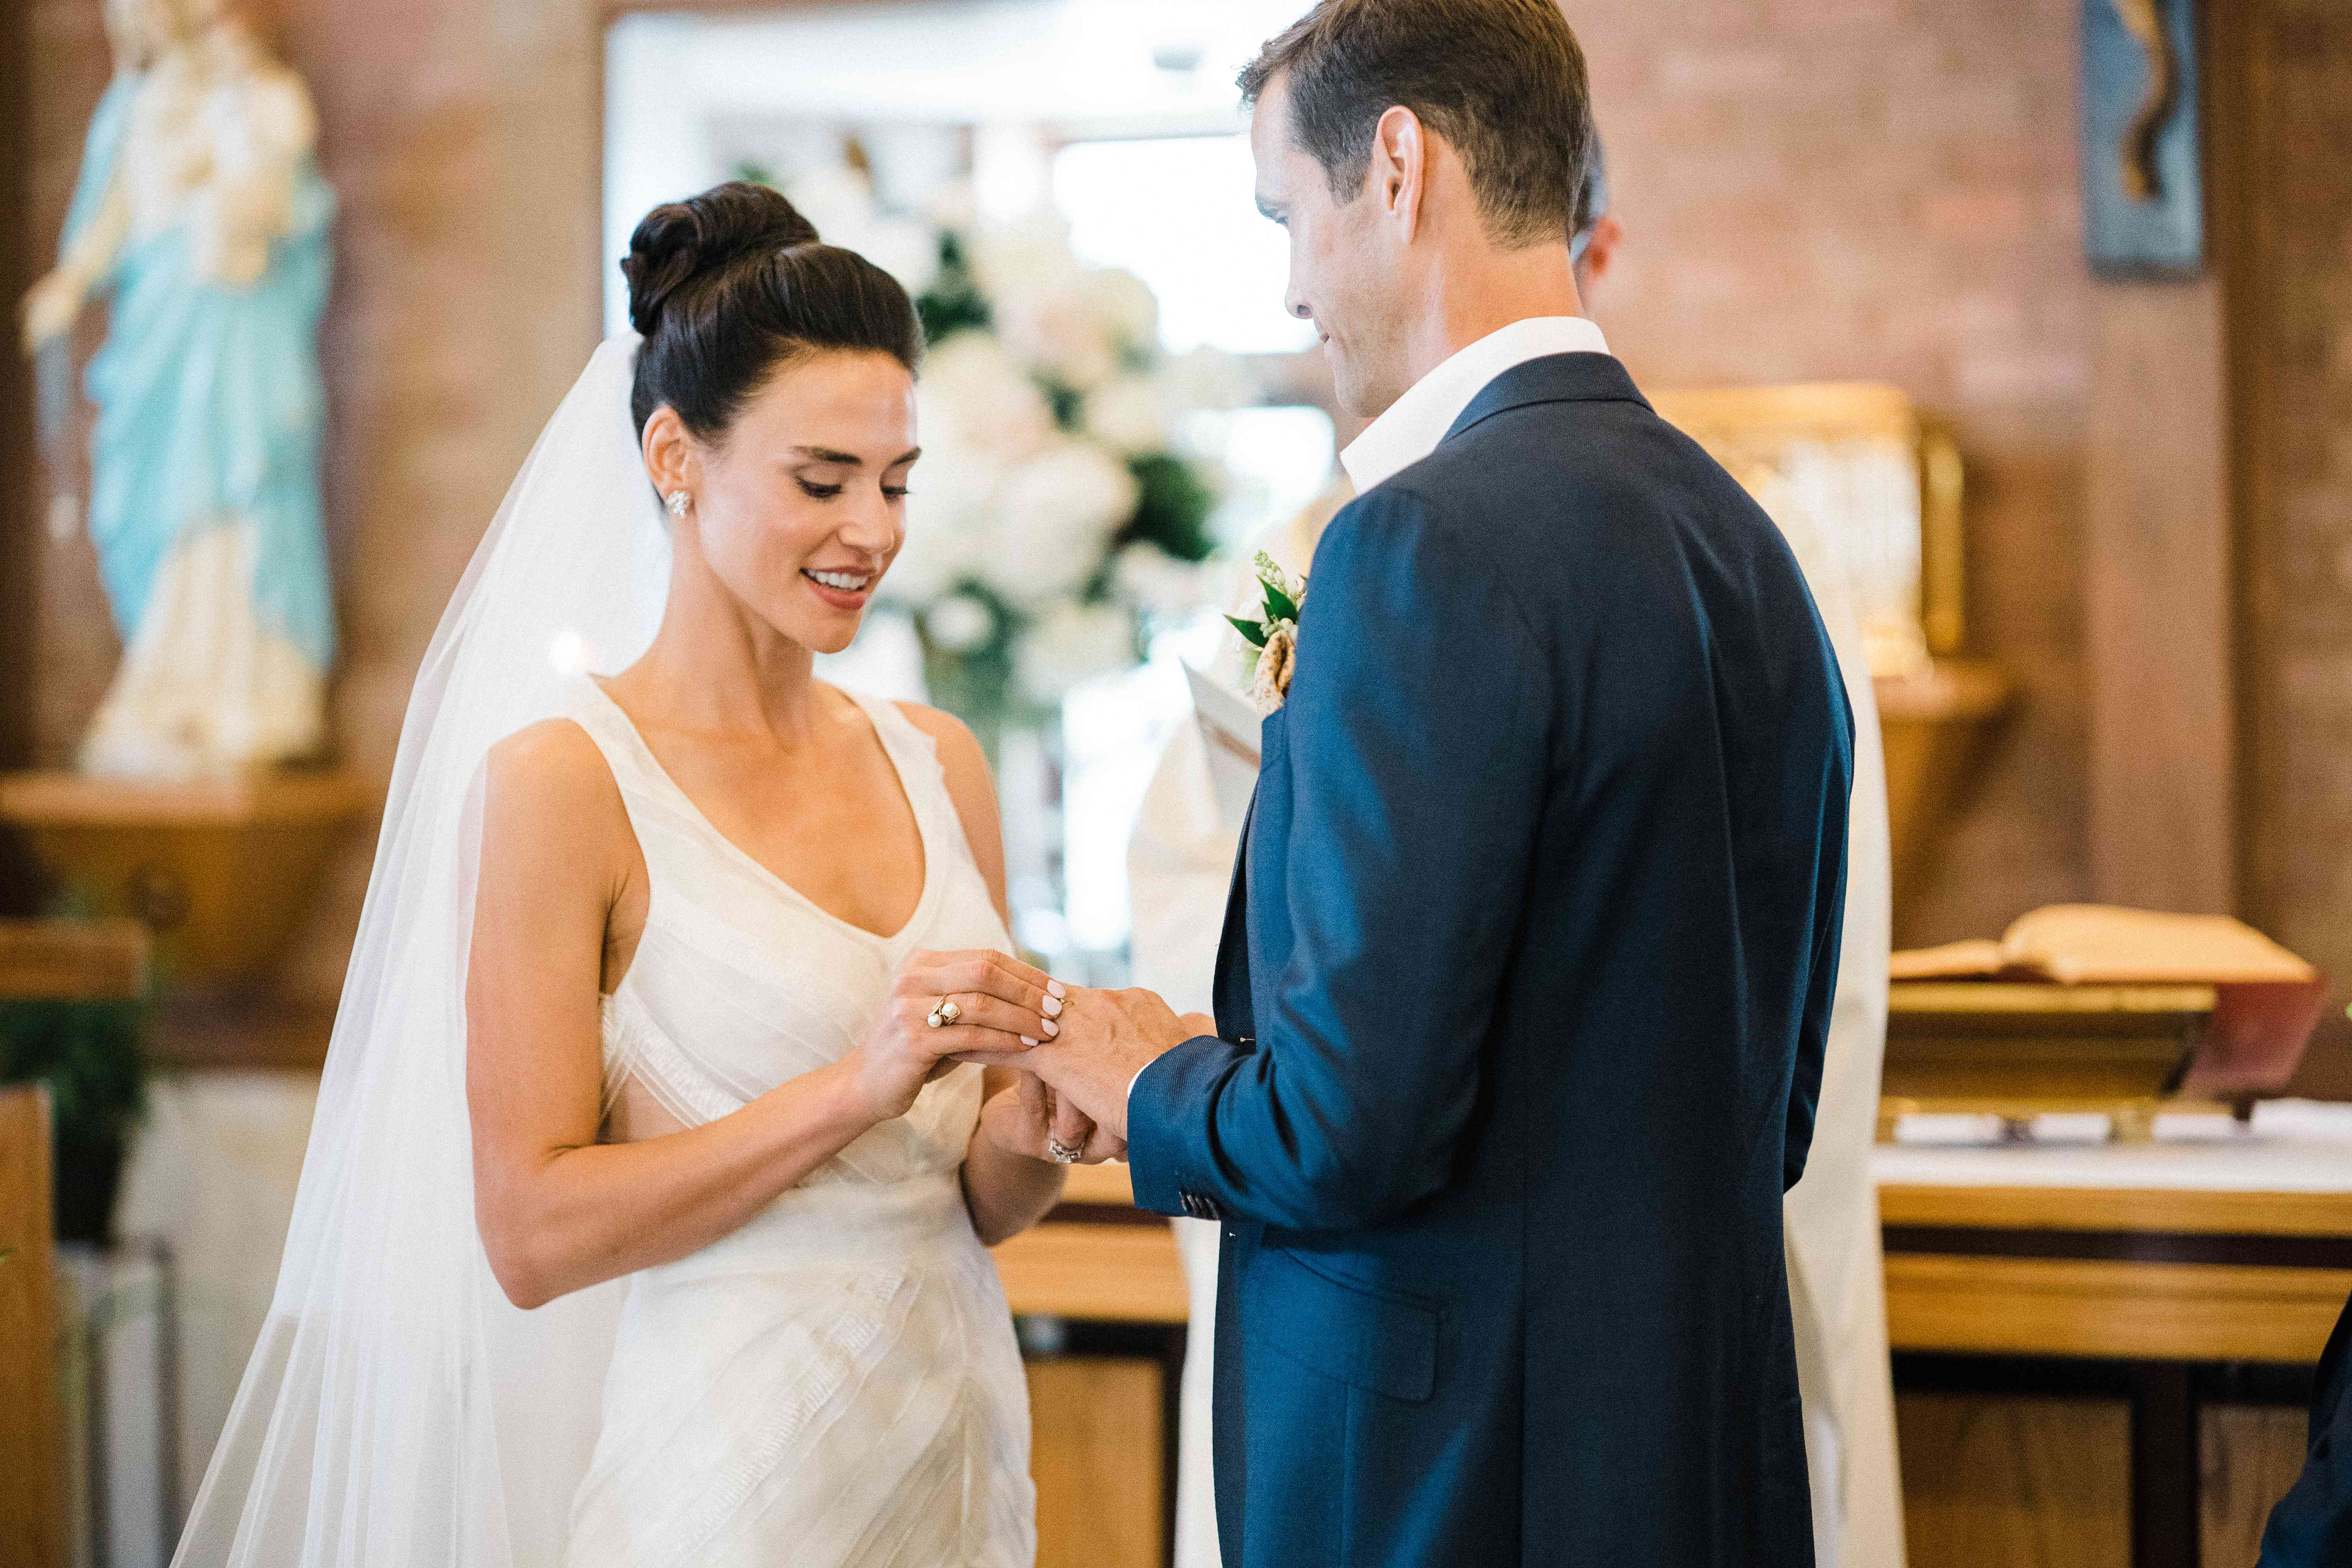 <p>Bride and groom exchanging rings</p><br><br>